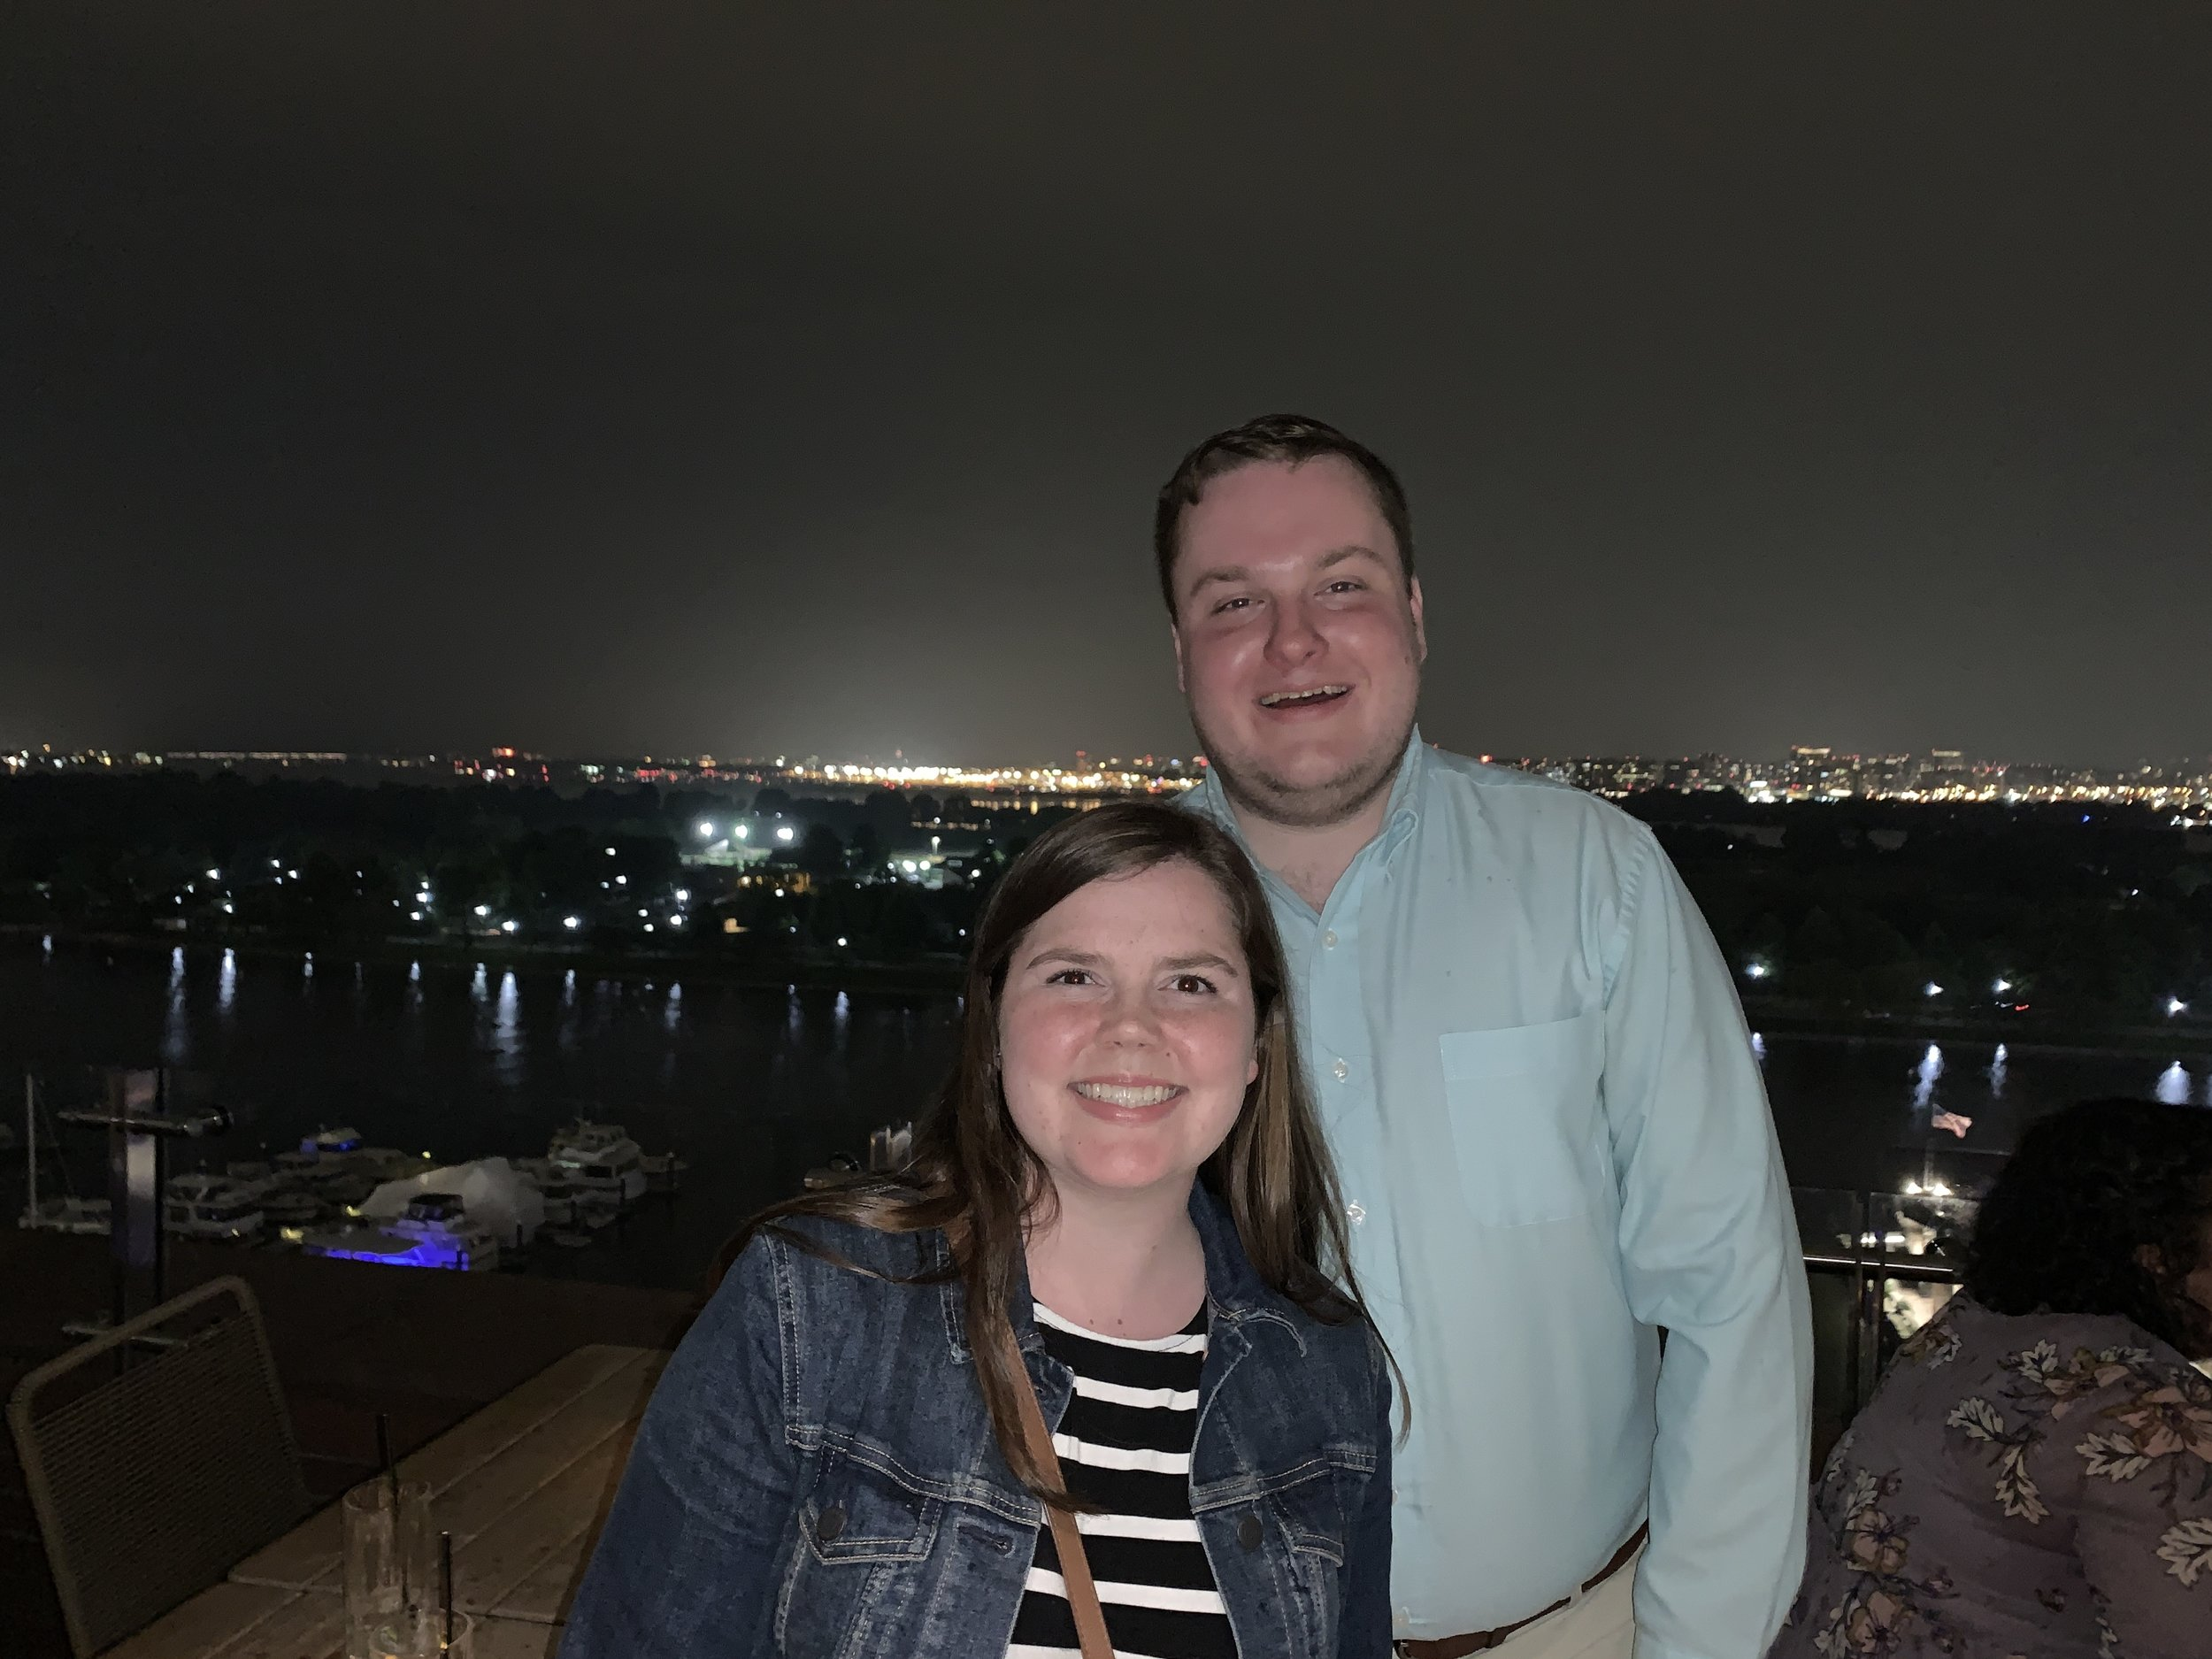 It was an outdoor patio and luckily the rain held off just long enough for us to get this photo :)